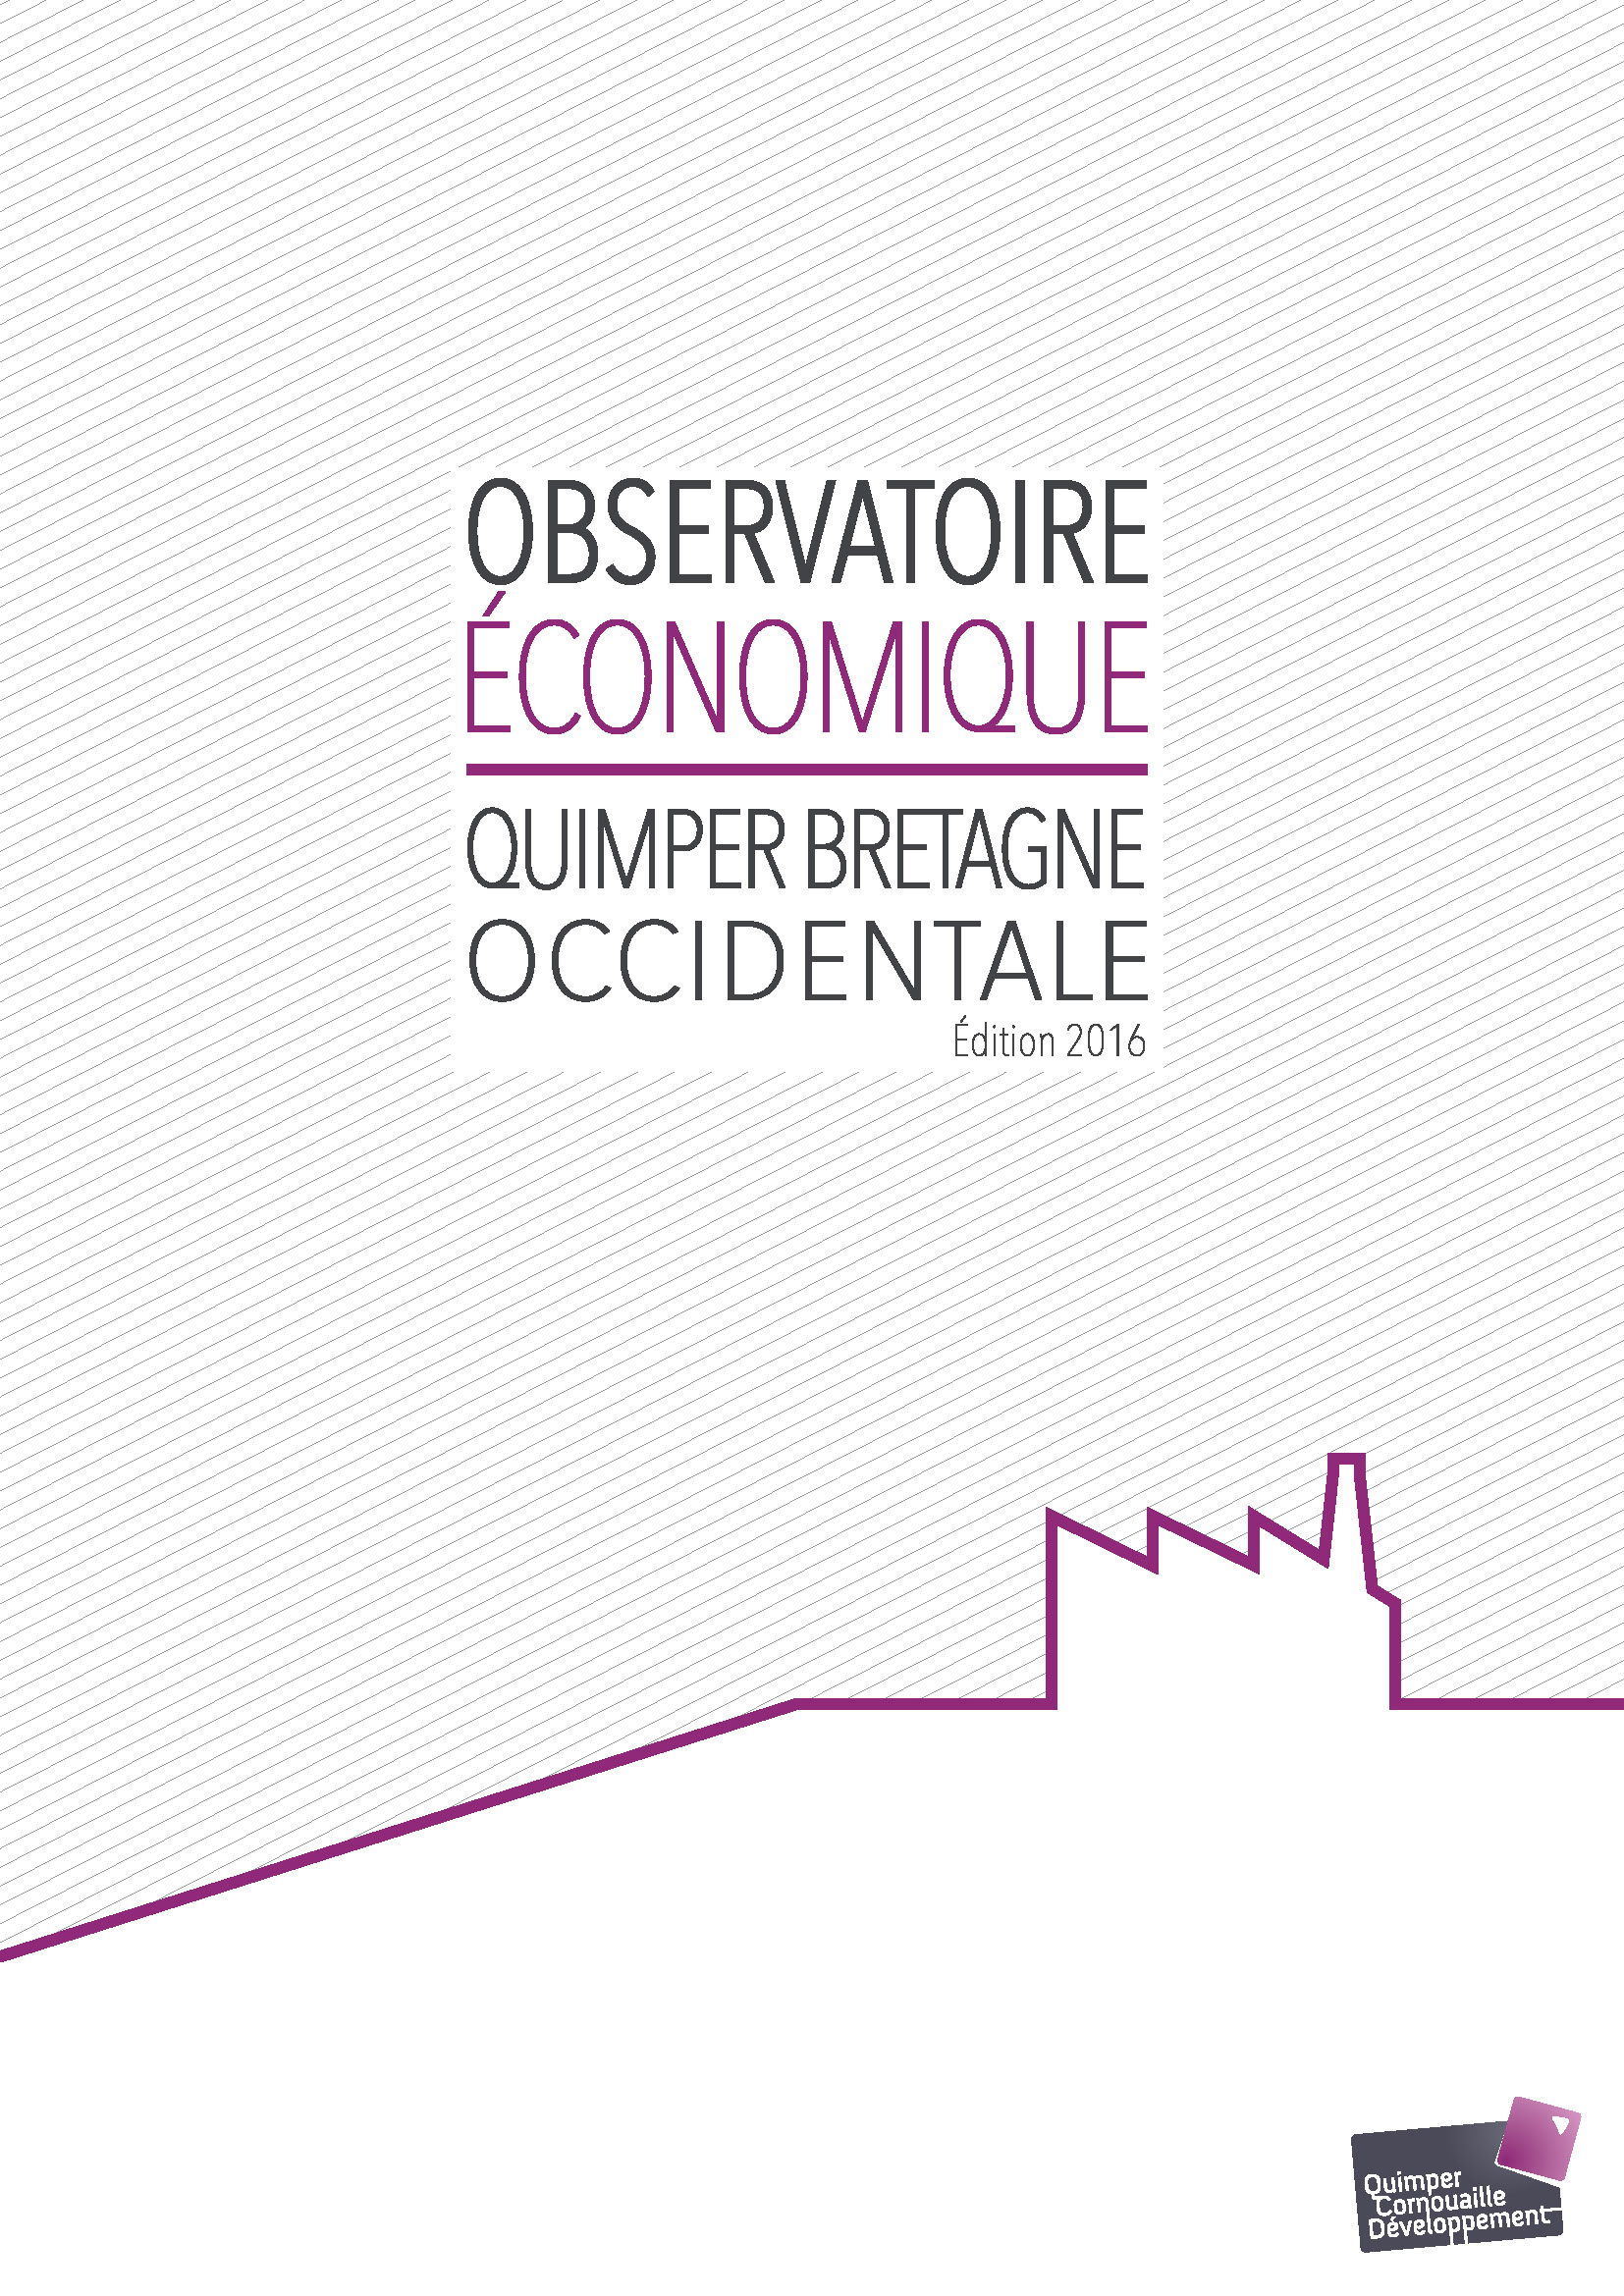 Observatoire Economique Quimper Bretagne Occidentale. Edition 2016 (08/2017)